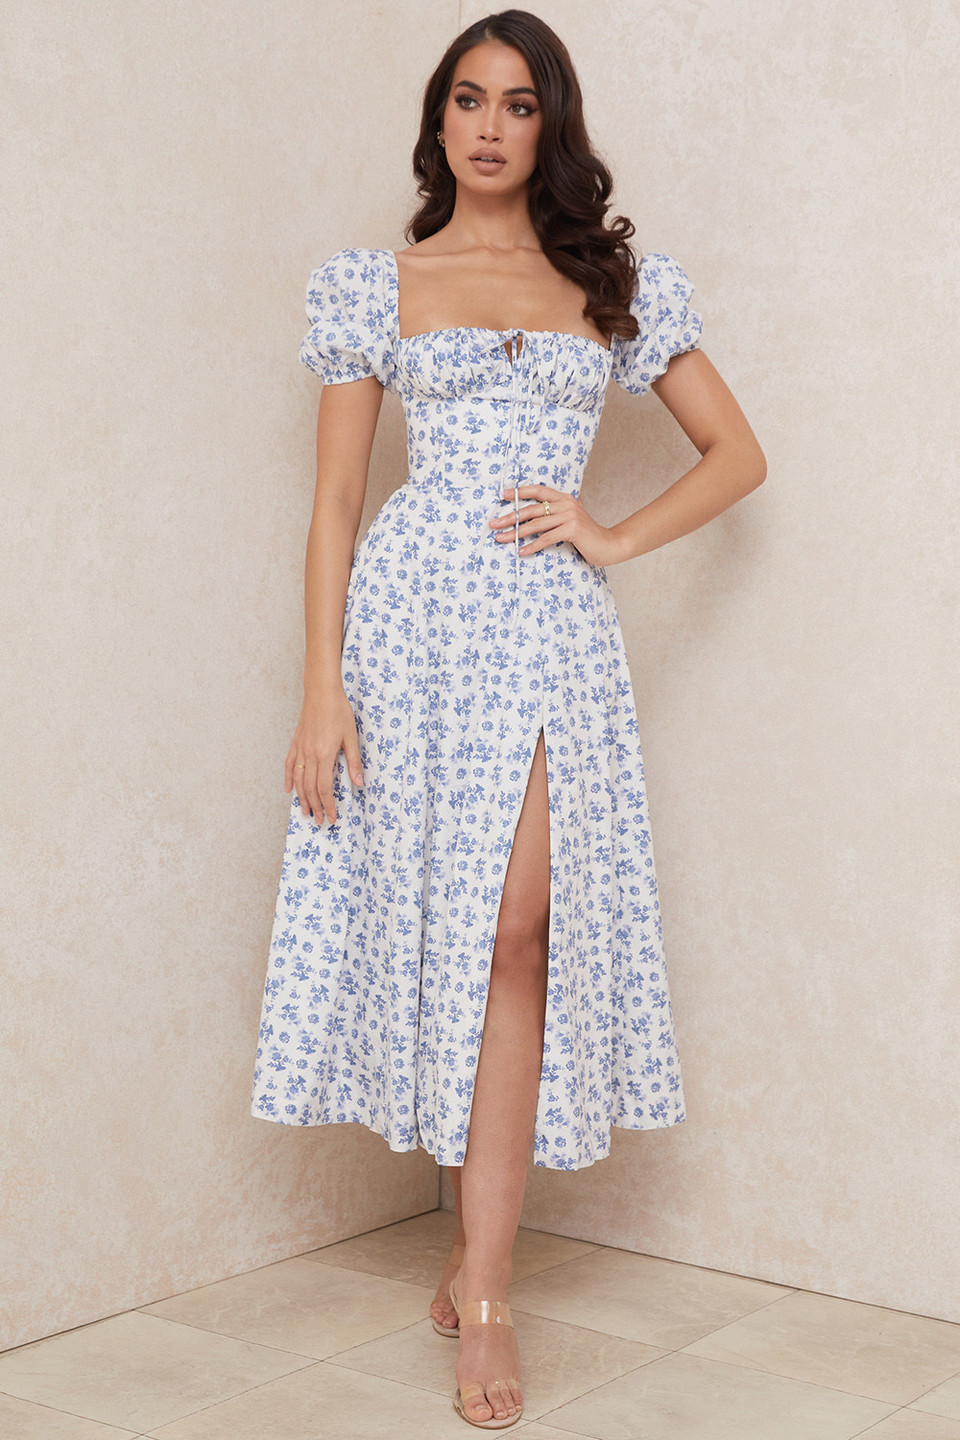 Tallulah Blue White Floral Midi Dress